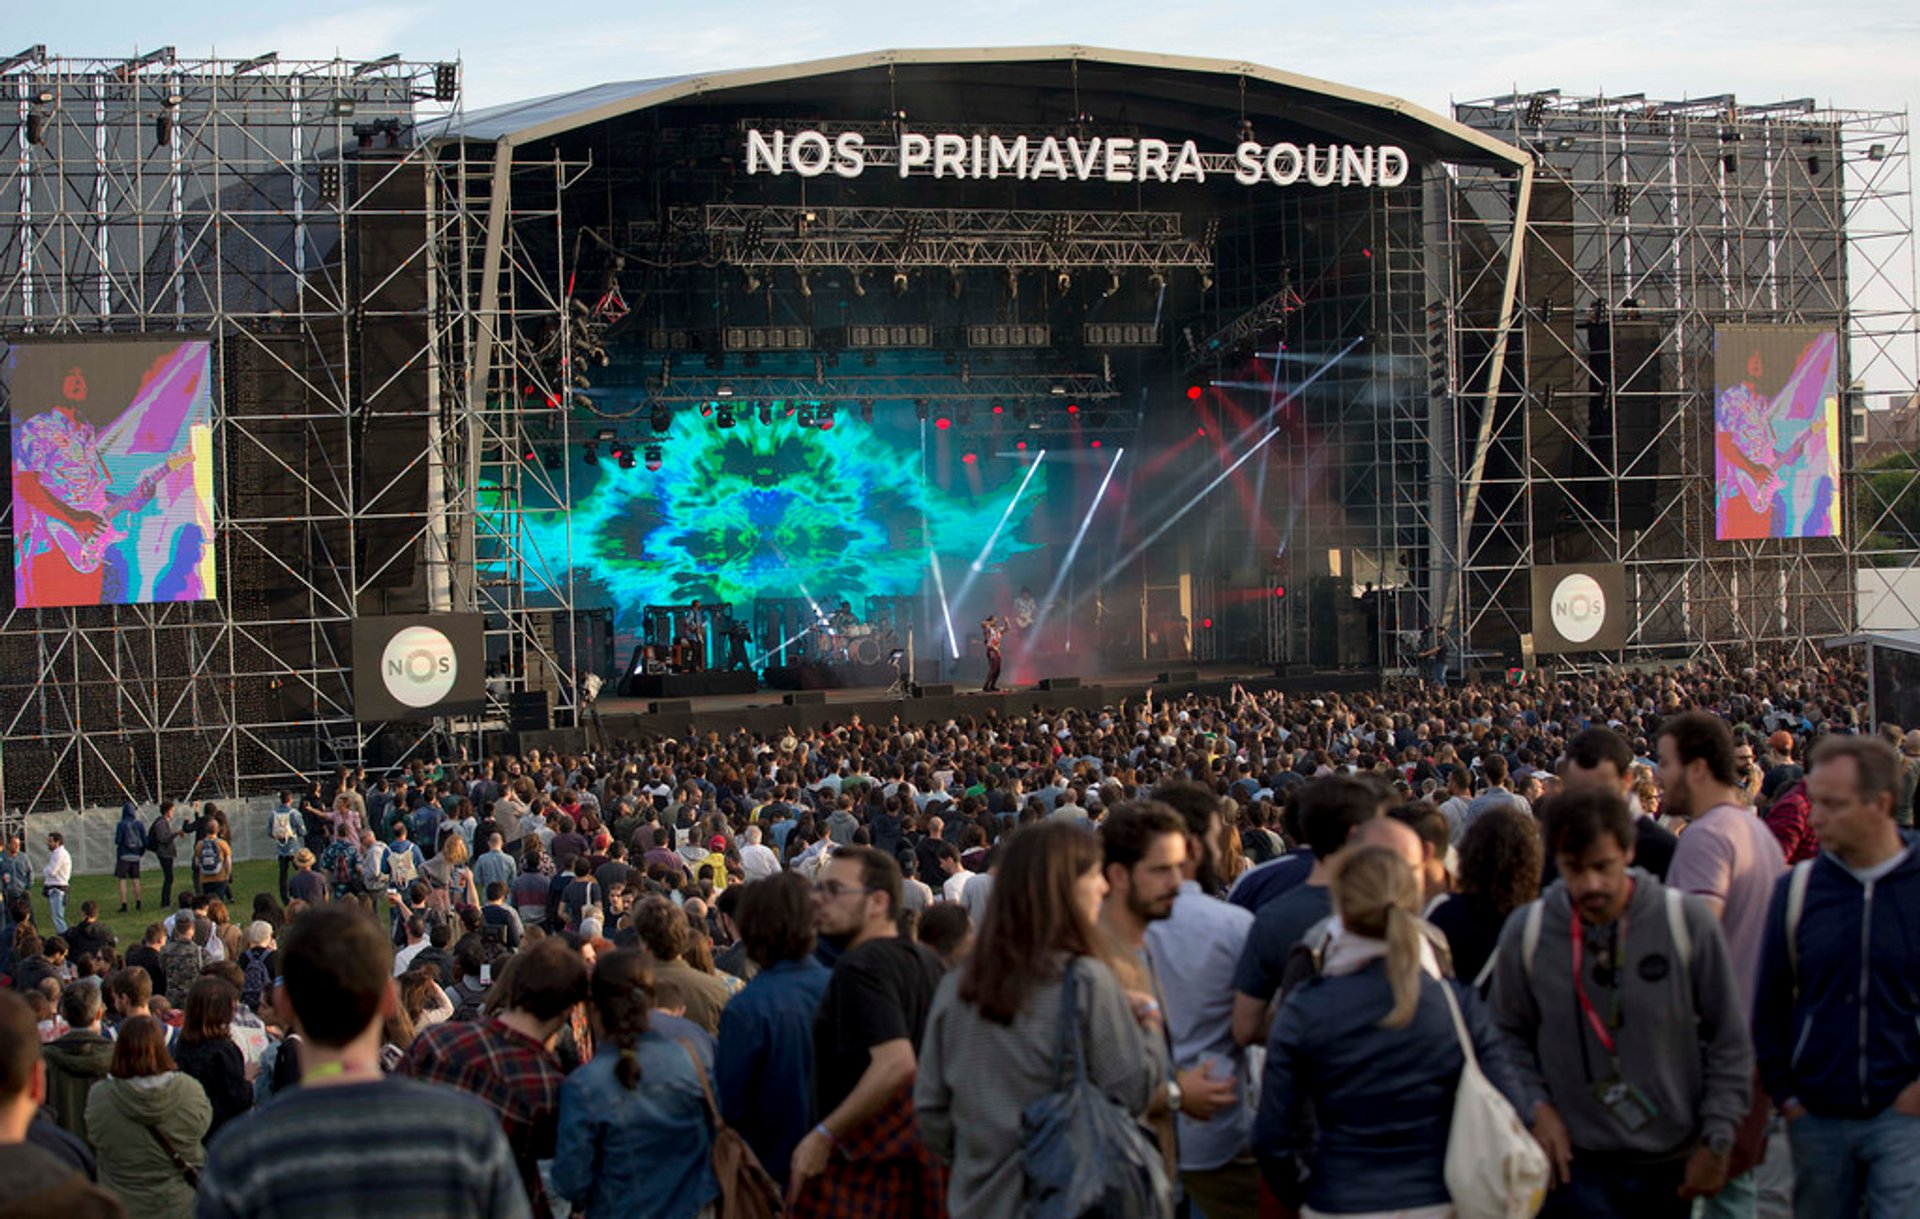 Best time for NOS Primavera Sound 2020